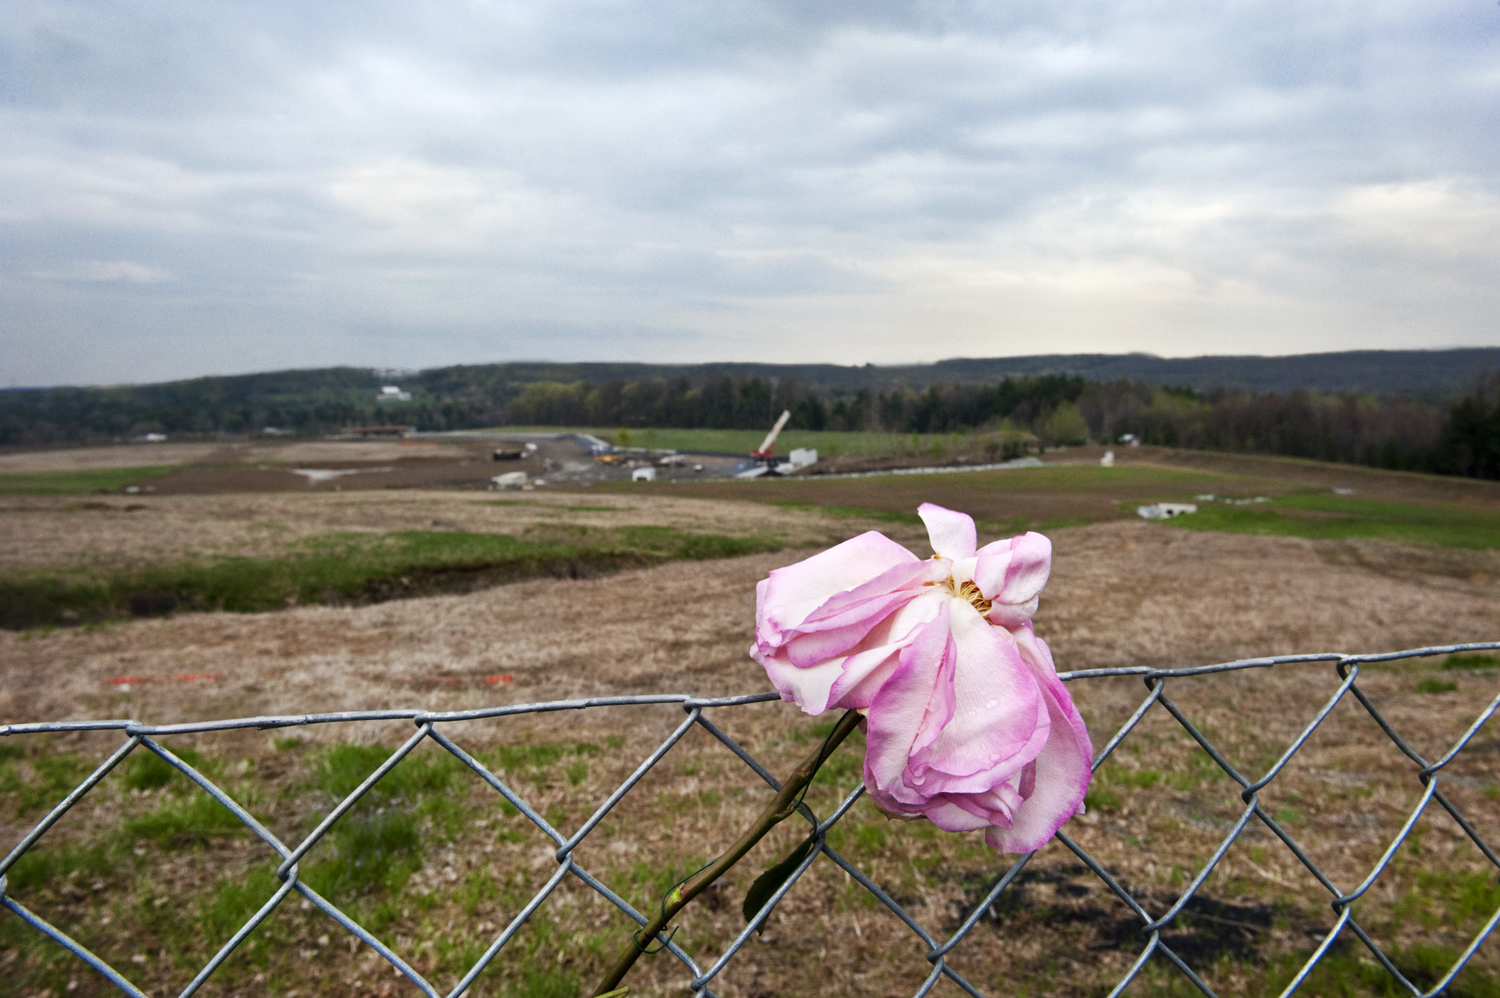 A single flower in the fence at the crash site in Shanksvillle, Pa. the day after Osama Bin Laden was killed by the U.S. military in Pakistan.